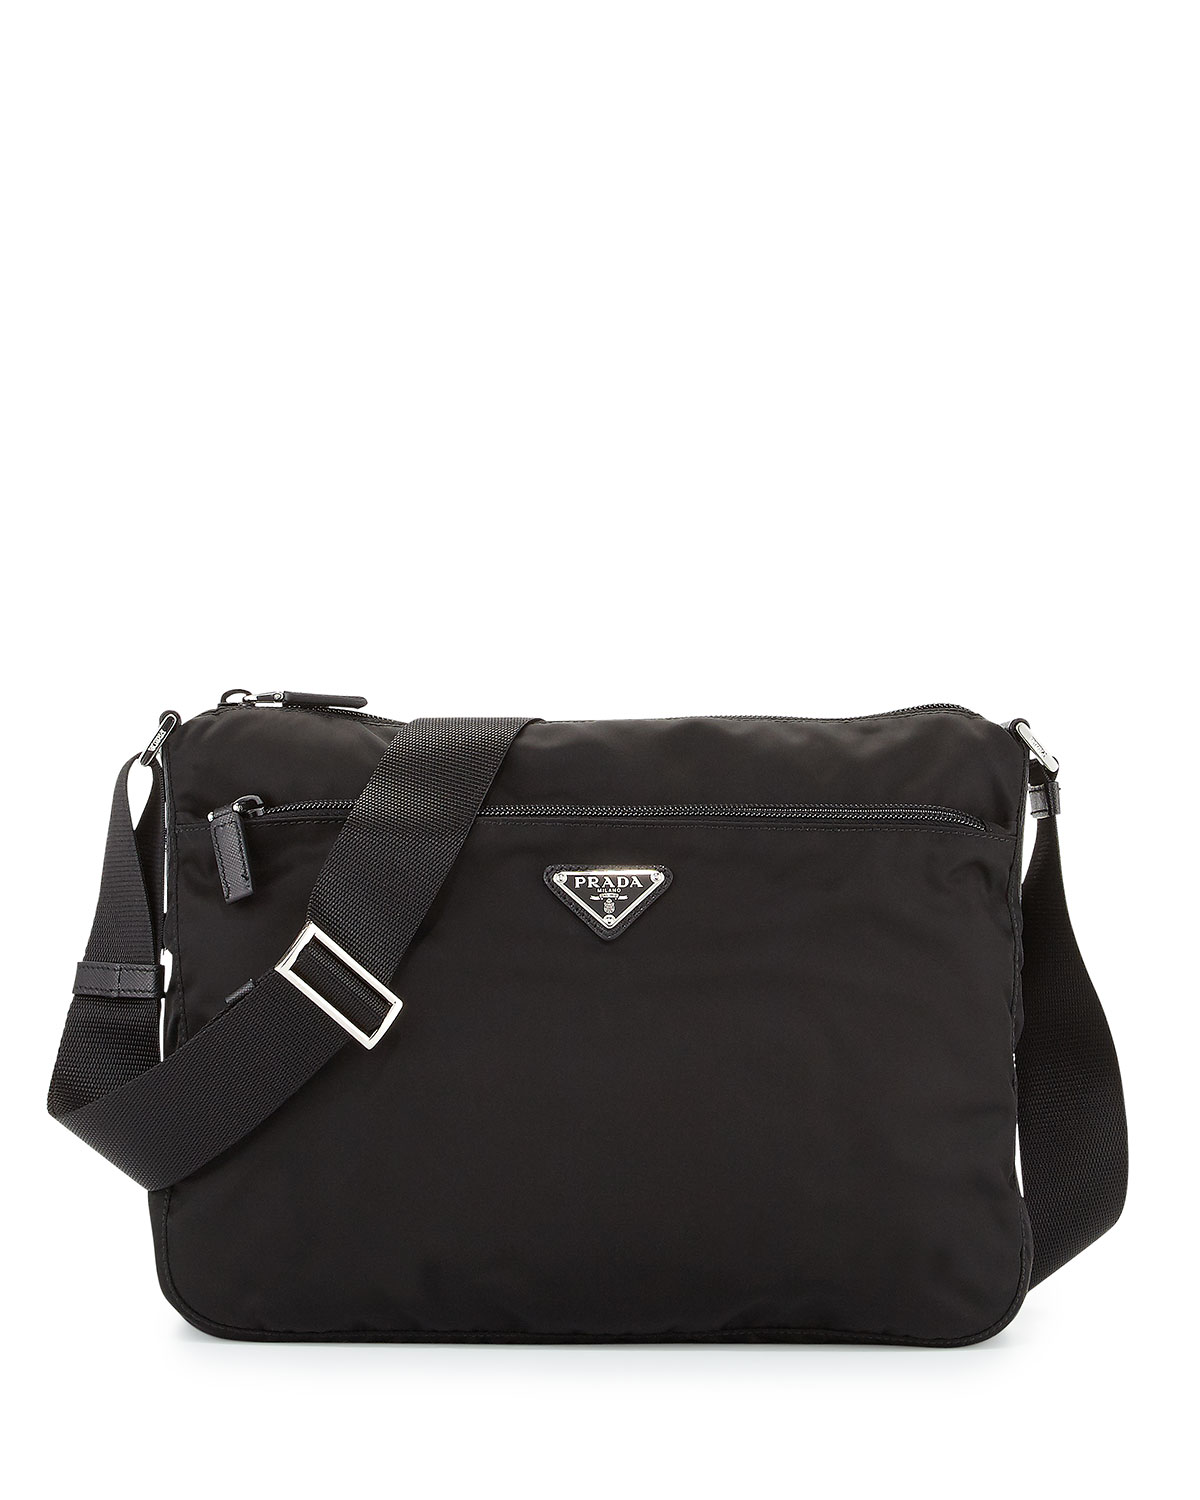 a2f1d93bfa99 Prada Large Nylon Crossbody Bag, Black (Nero) | Neiman Marcus